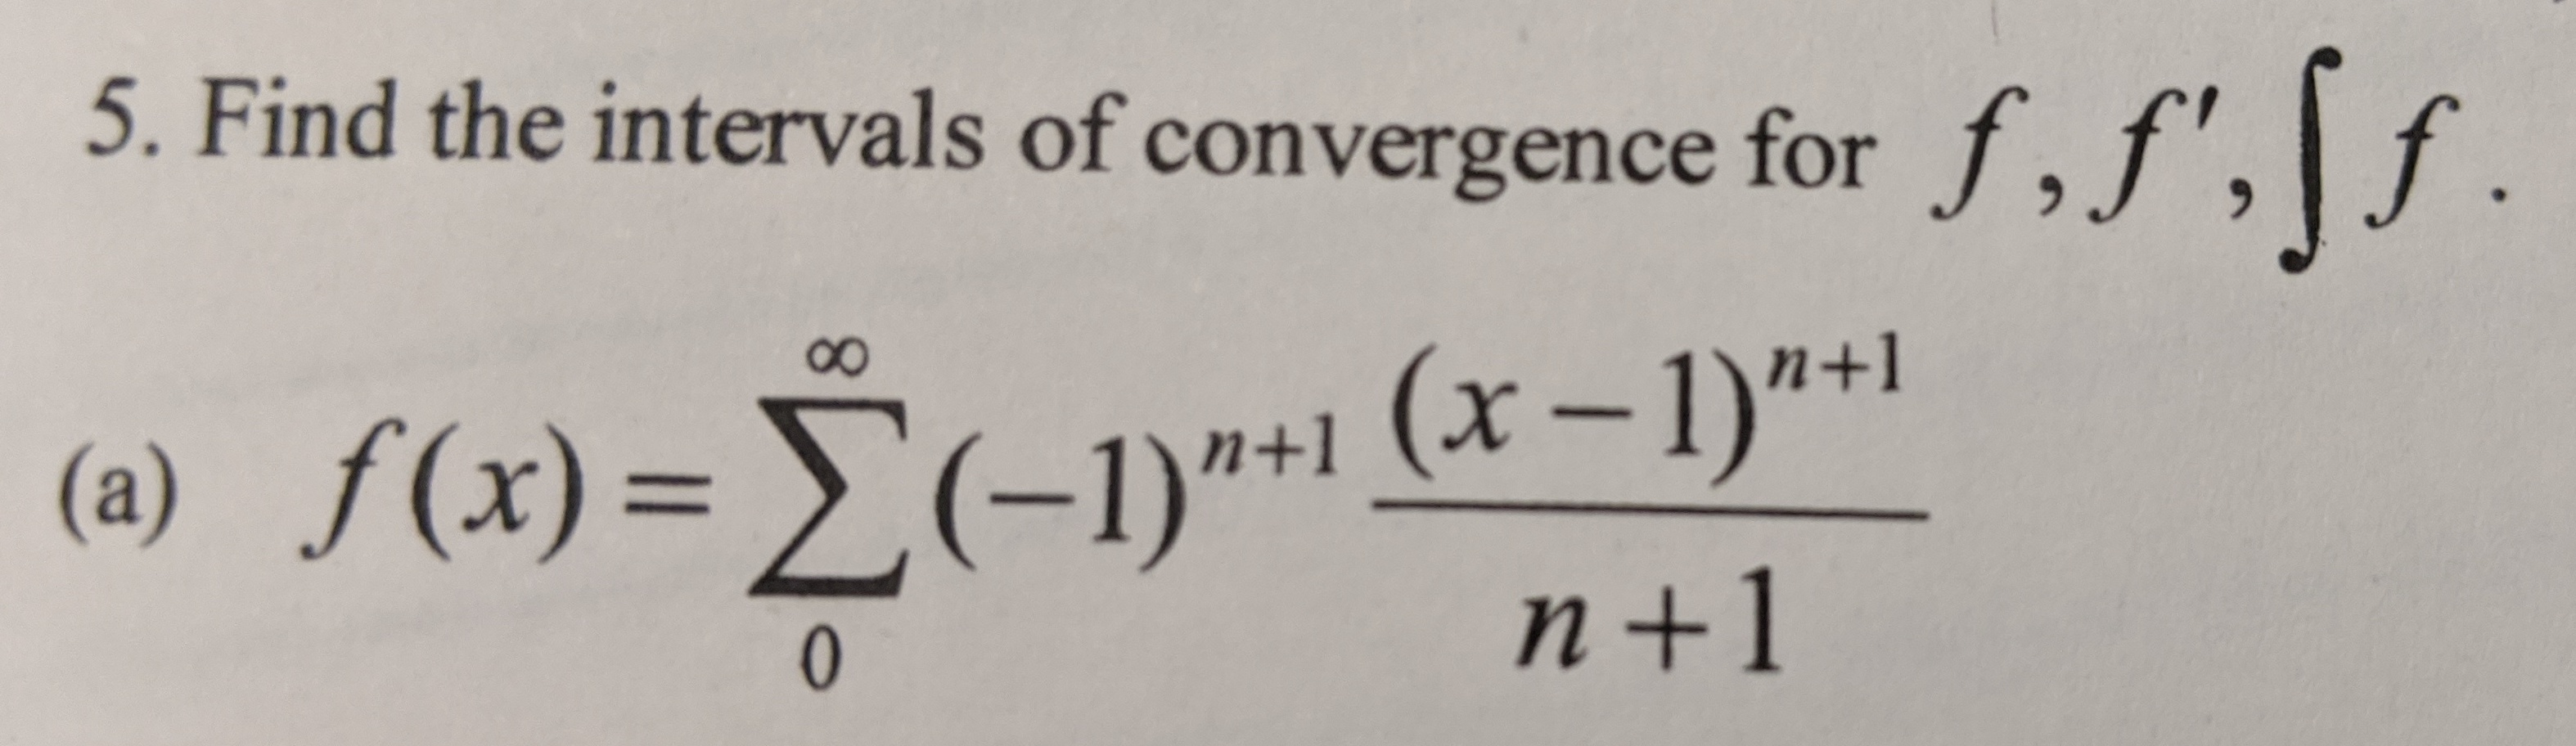 "5. Find the intervals of convergence for f,f',\f . f(x) = (-1)""+1 (x– 1)""+1 n+1 8. (a) ƒ(x)= E(-1)""*1 %3D 0."